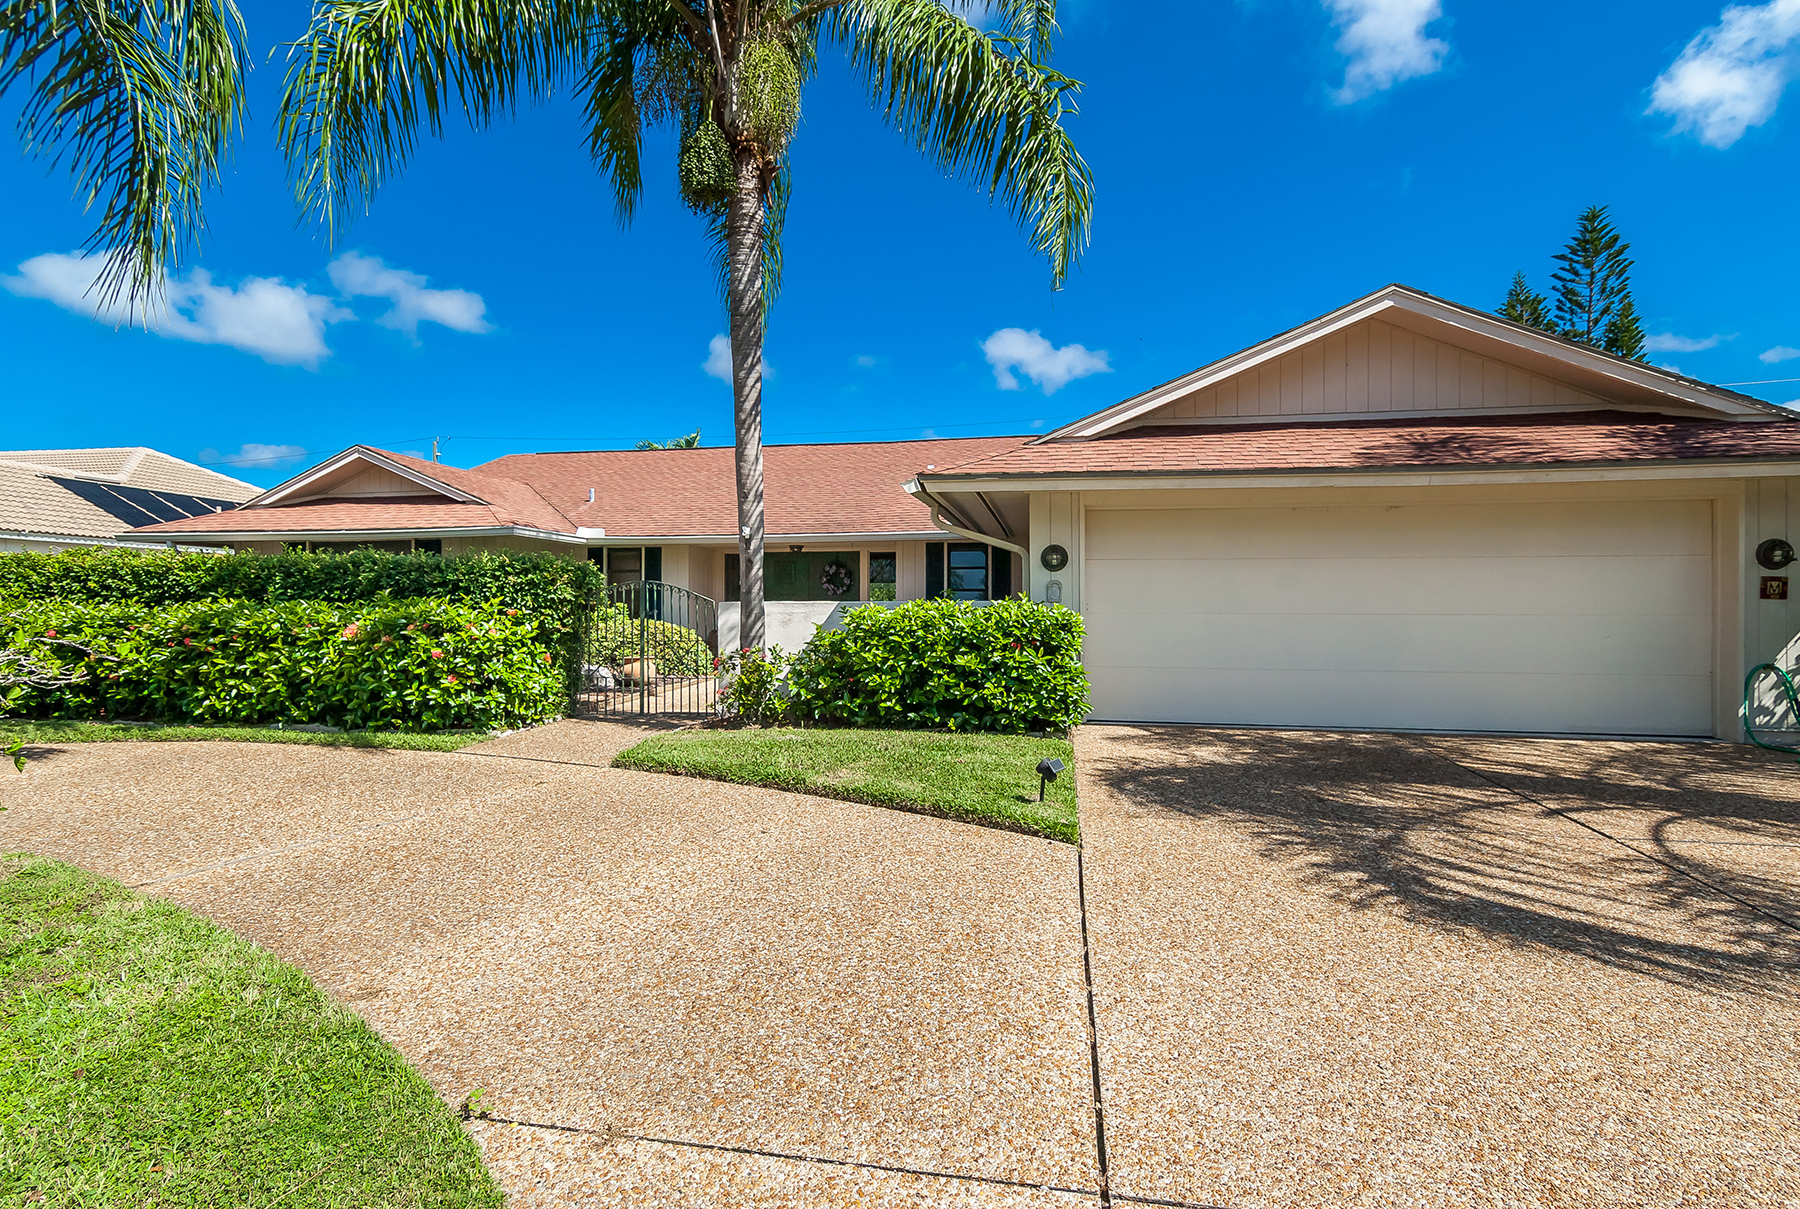 Single Family Home for Sale at SOUTHBAY YACHT & RACQUET CLUB 228 Windward Dr Osprey, Florida, 34229 United States